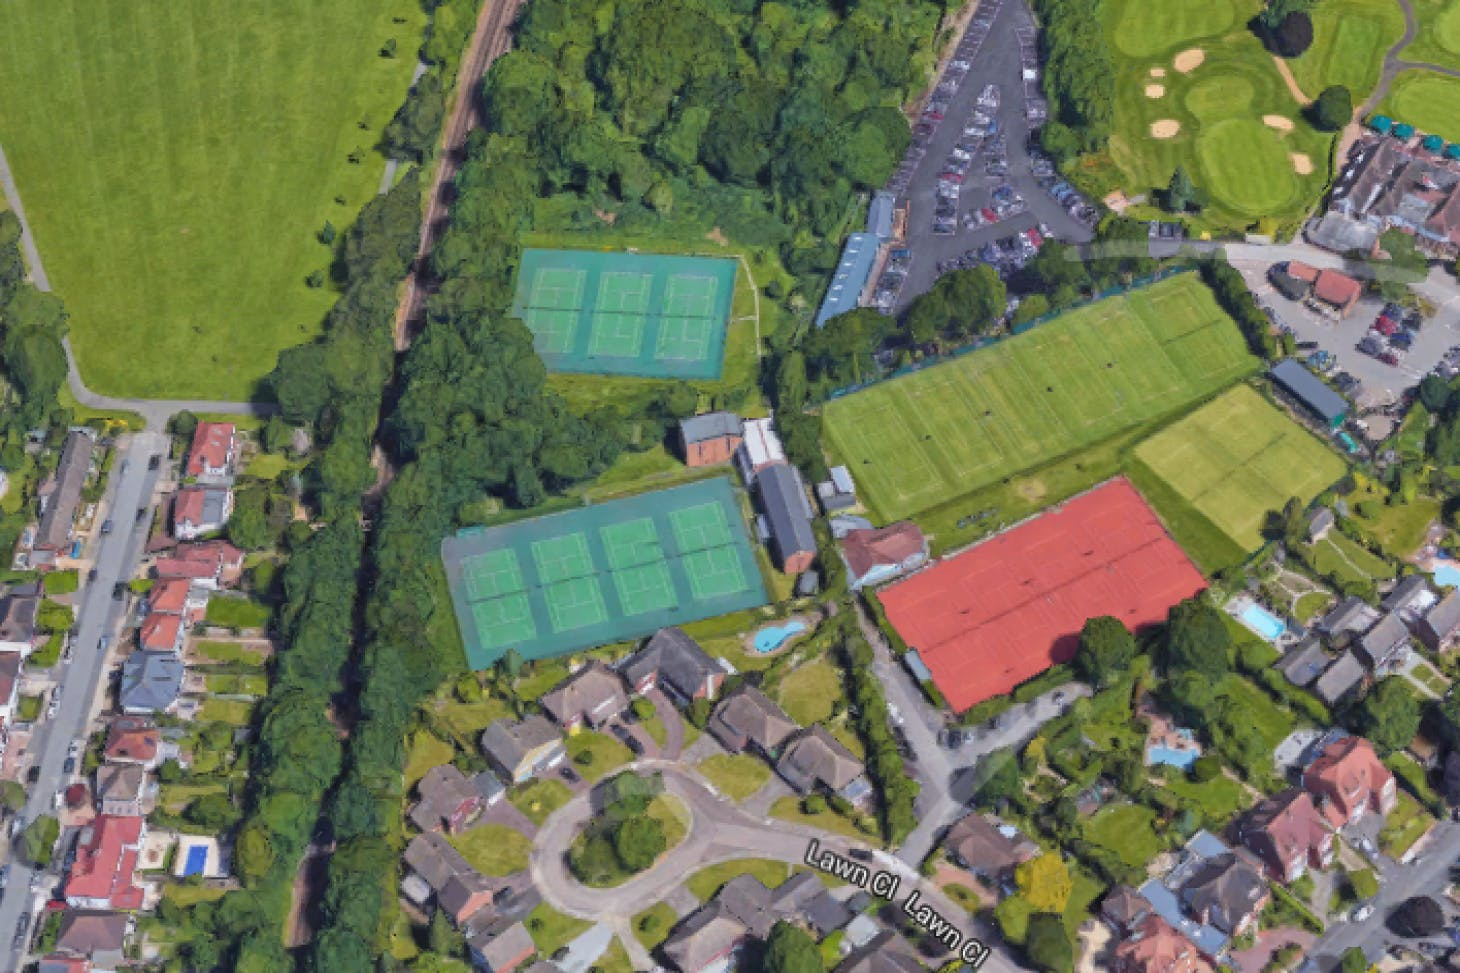 Sundridge Park Lawn Tennis & Squash Rackets Club Outdoor | Grass tennis court